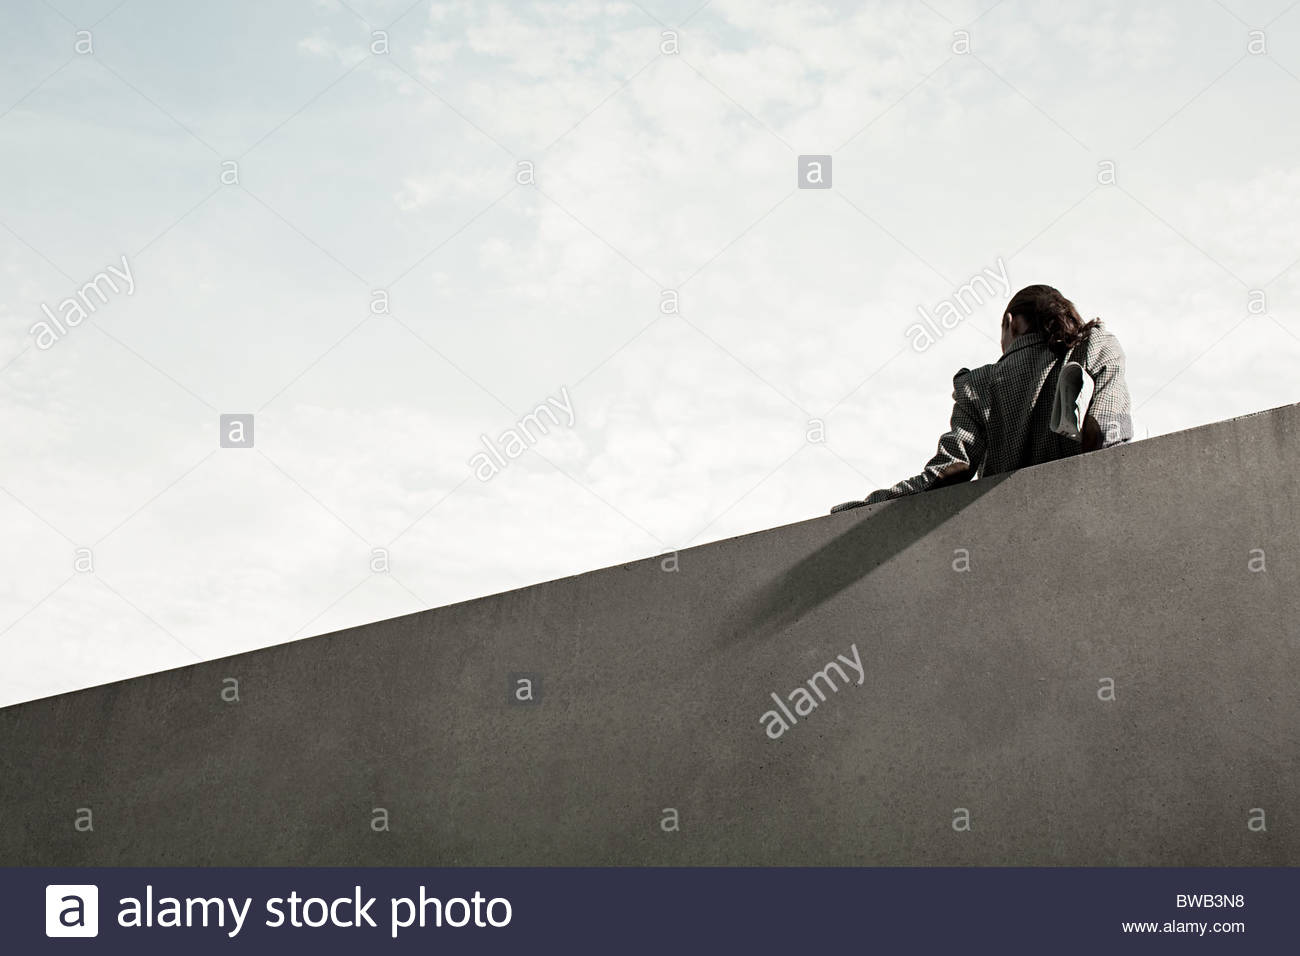 Businesswoman by wall, rear view, low angle - Stock Image